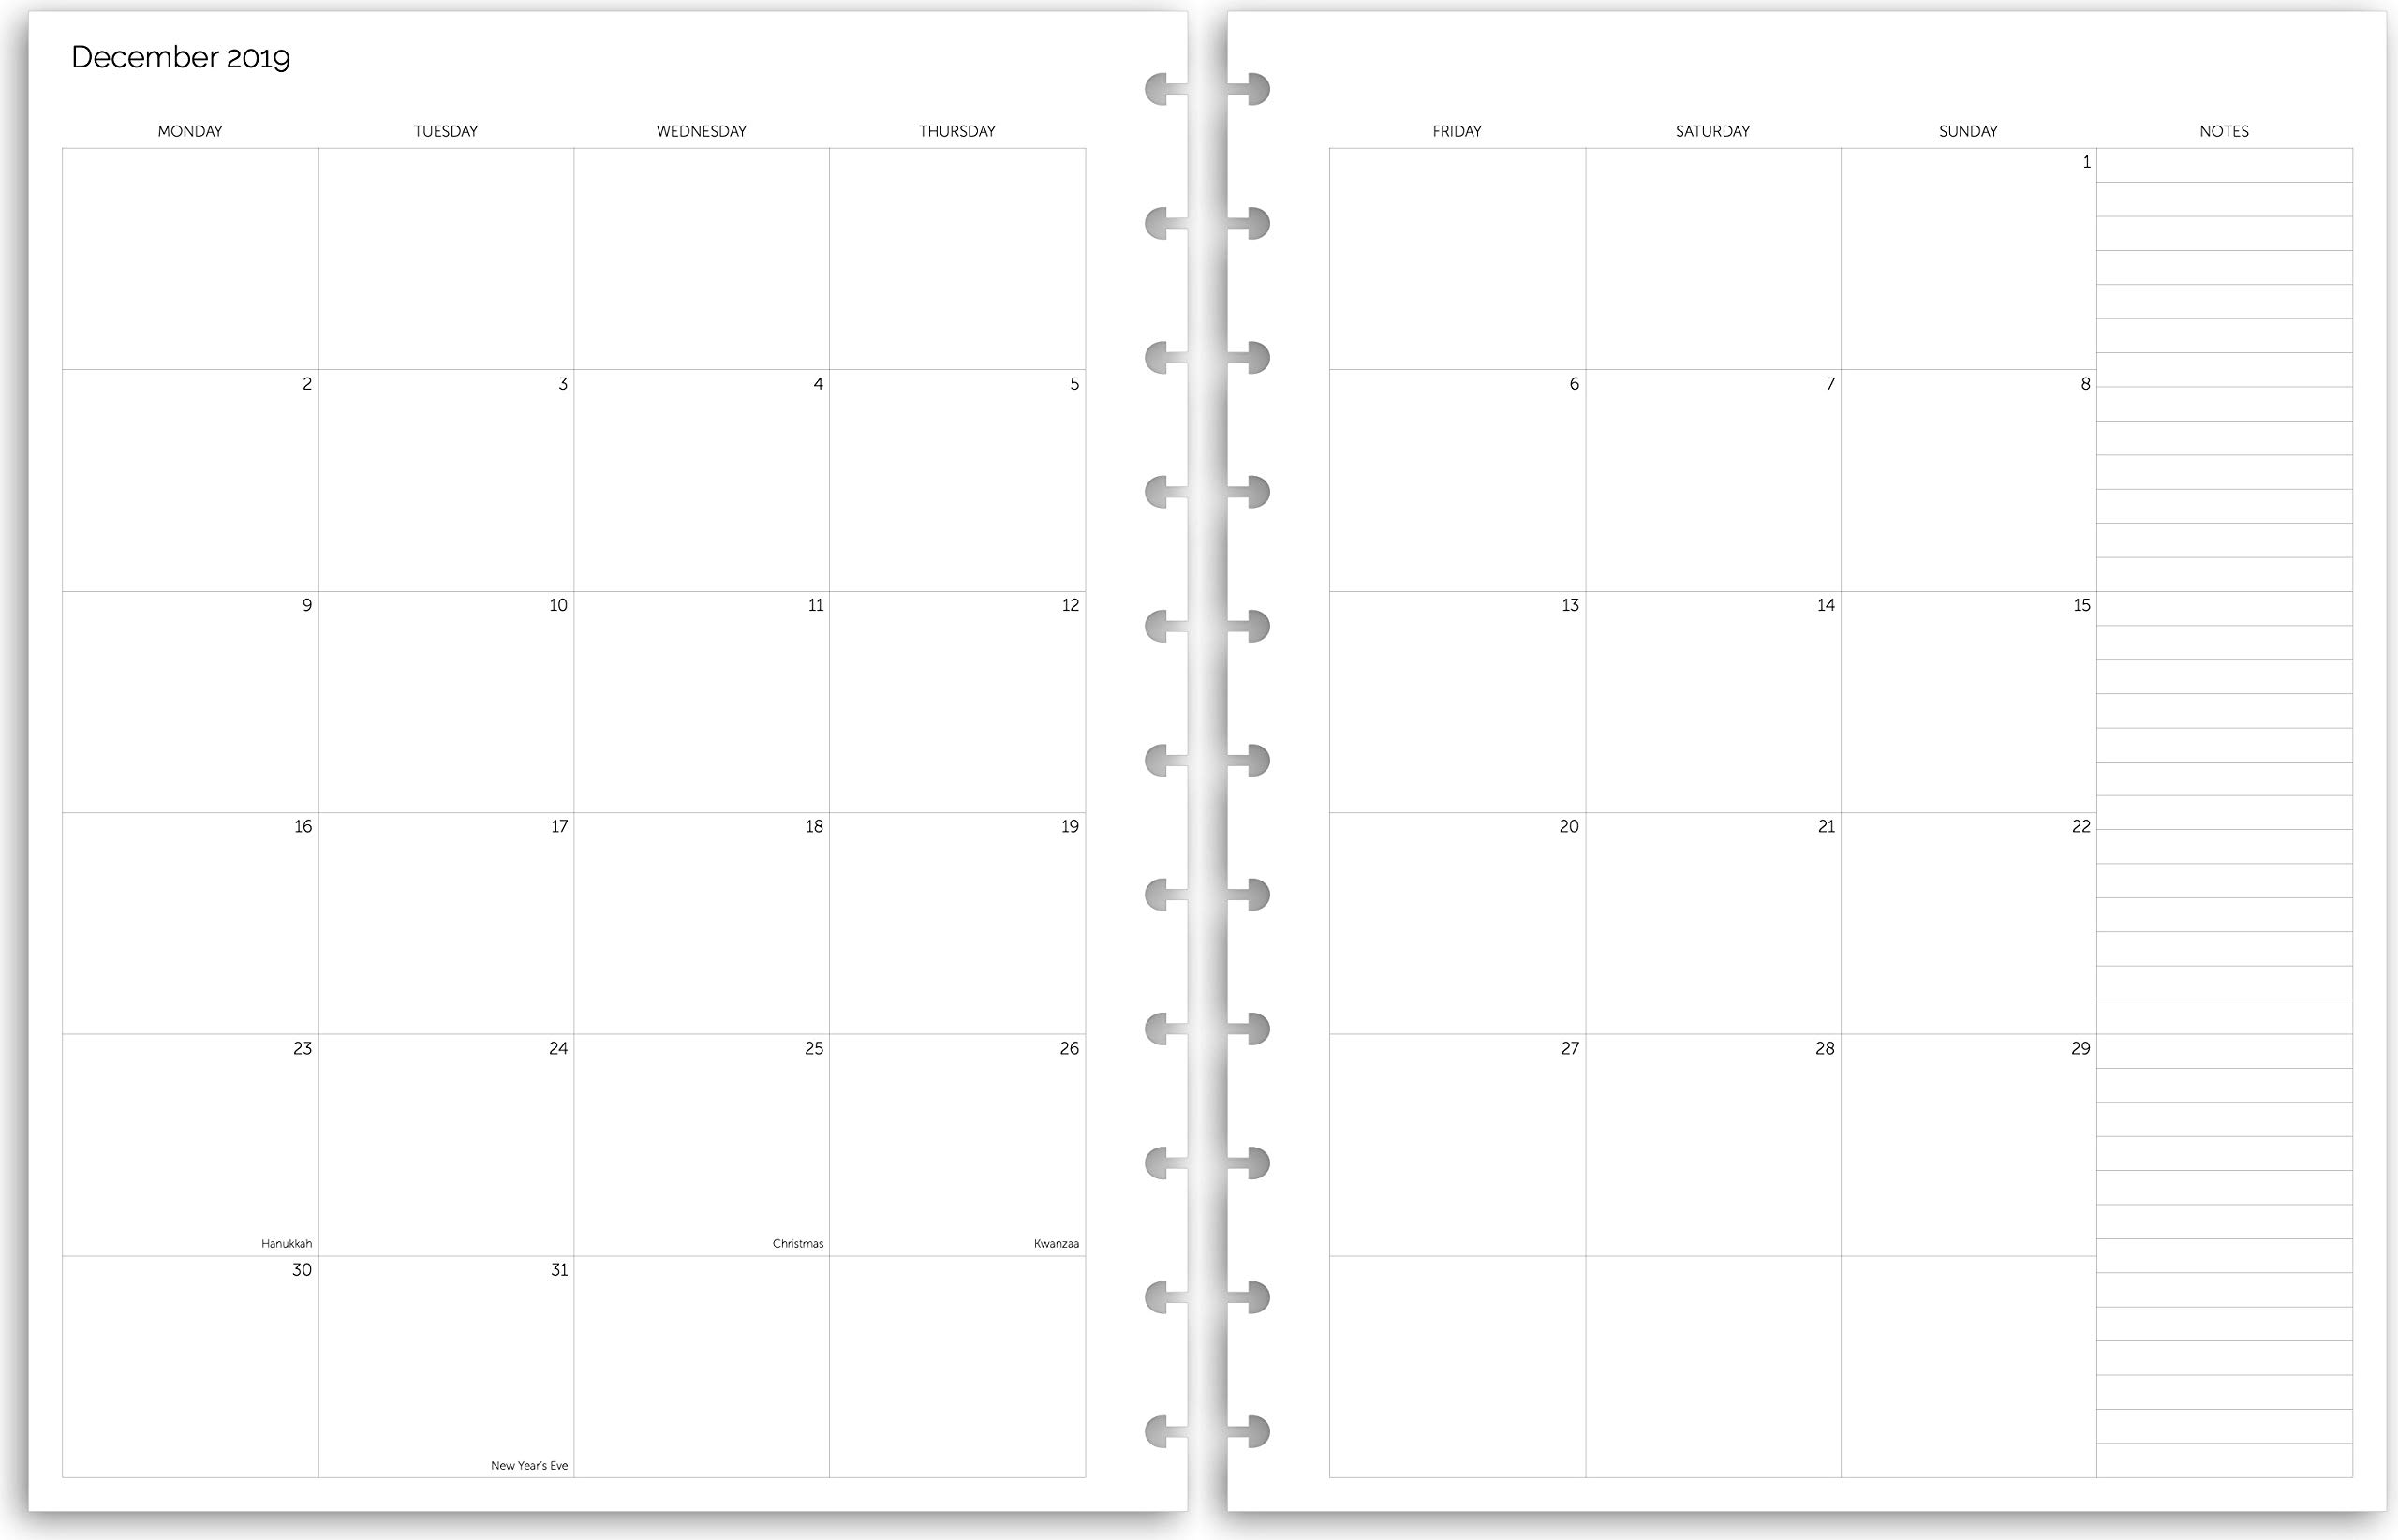 image regarding Discbound Planner Printables referred to as 11 Discs 2019 Letter Month-to-month Planner Sheets, Quality Heavyweight Discbound Laptop computer Paper Refills Punched for Circa, Arc, TUL (38 Sheets)